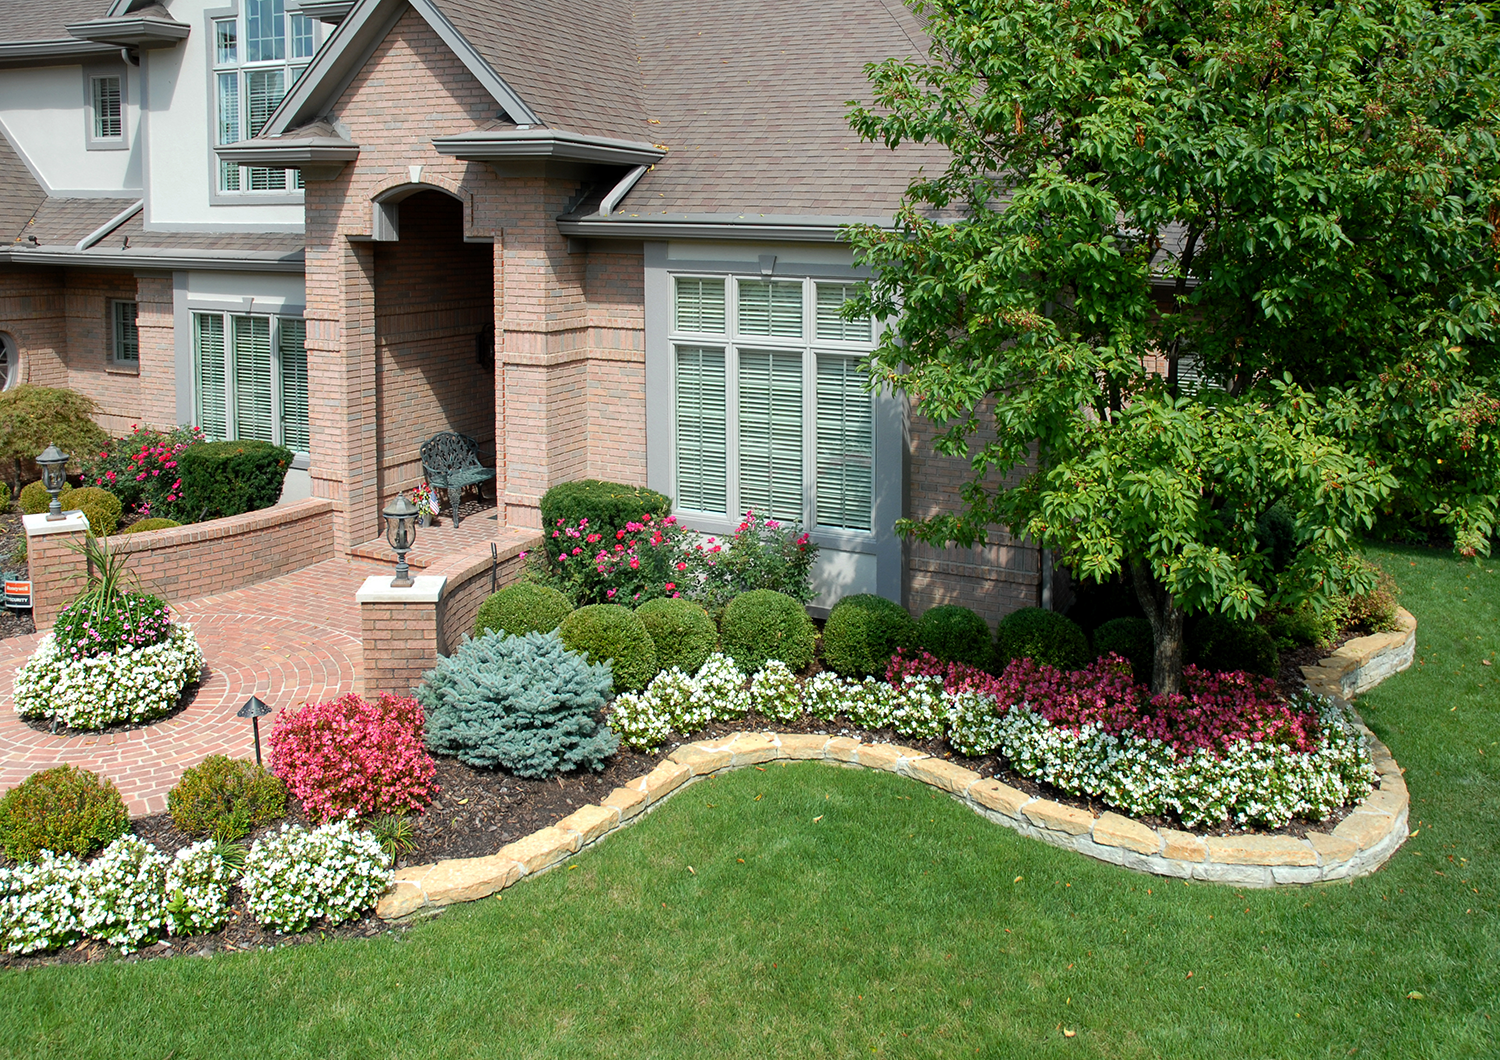 Plantings flower beds tinkerturf for Curb appeal garden designs